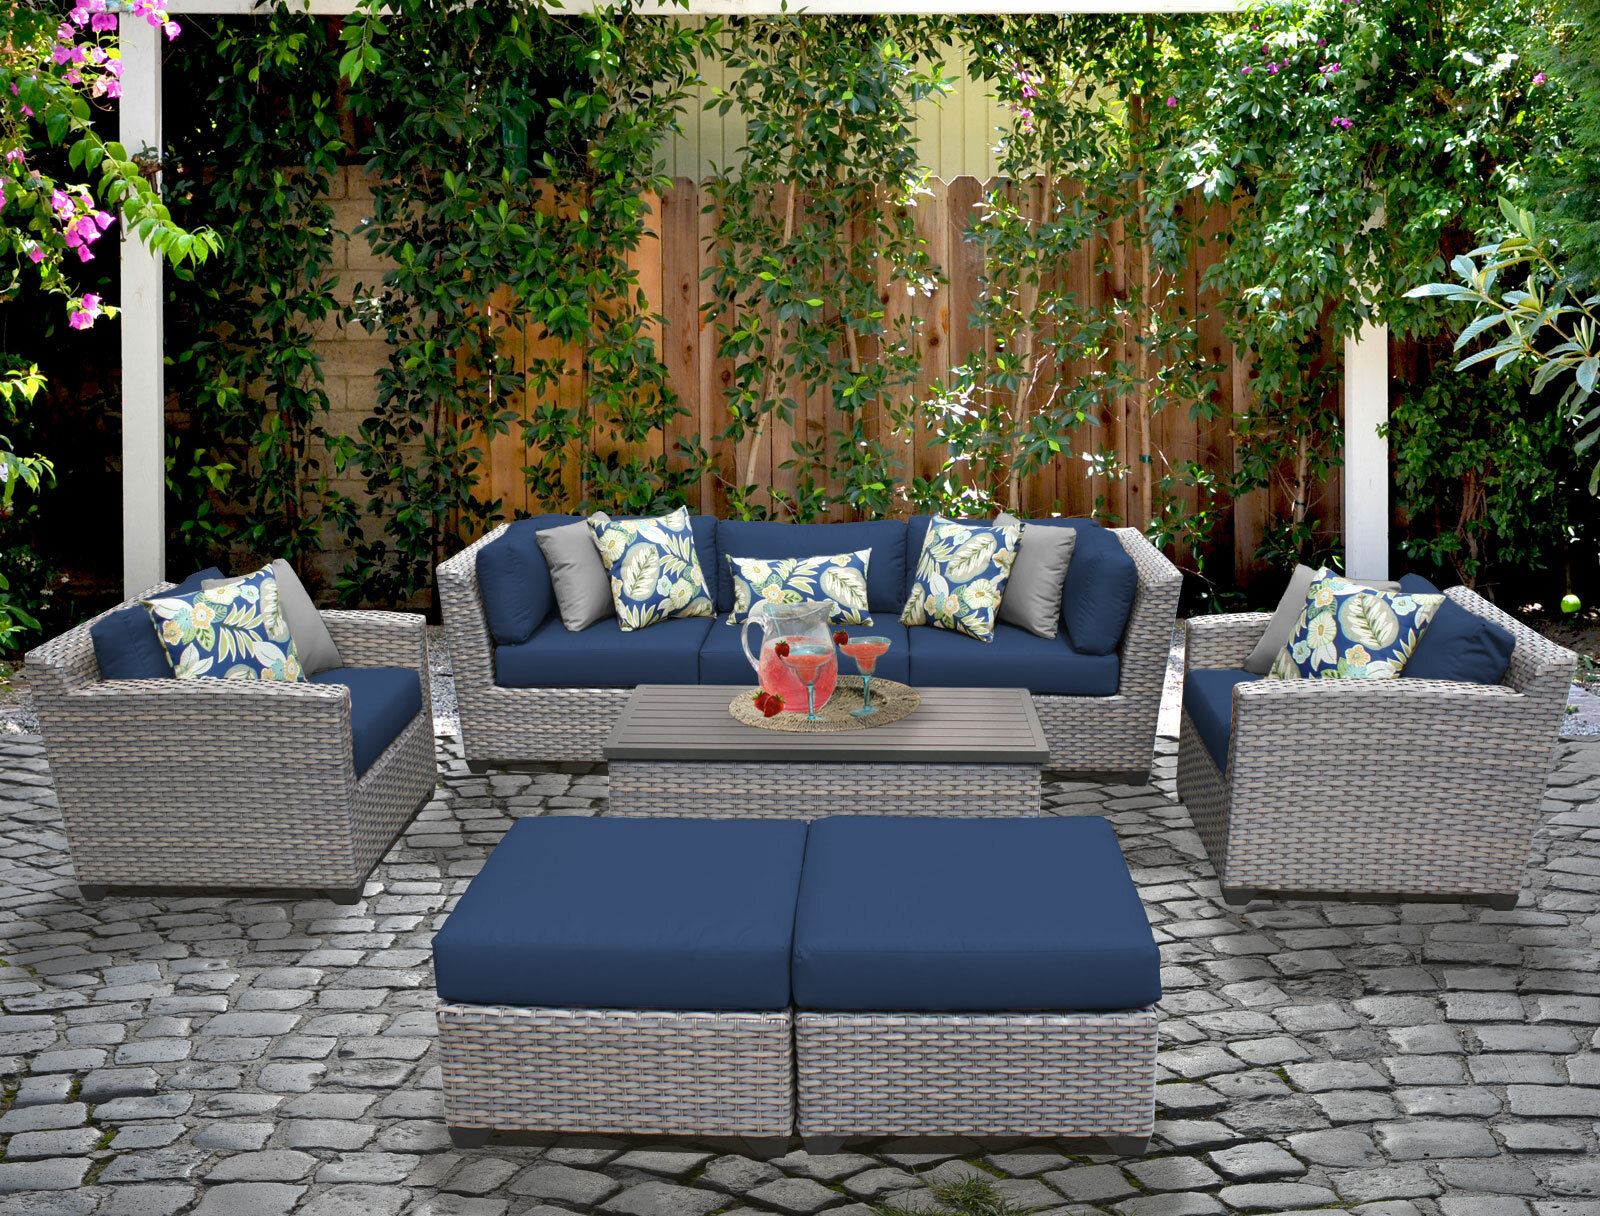 Merlyn 8 Piece Rattan Sofa Seating Group With Cushions Reviews Joss Main